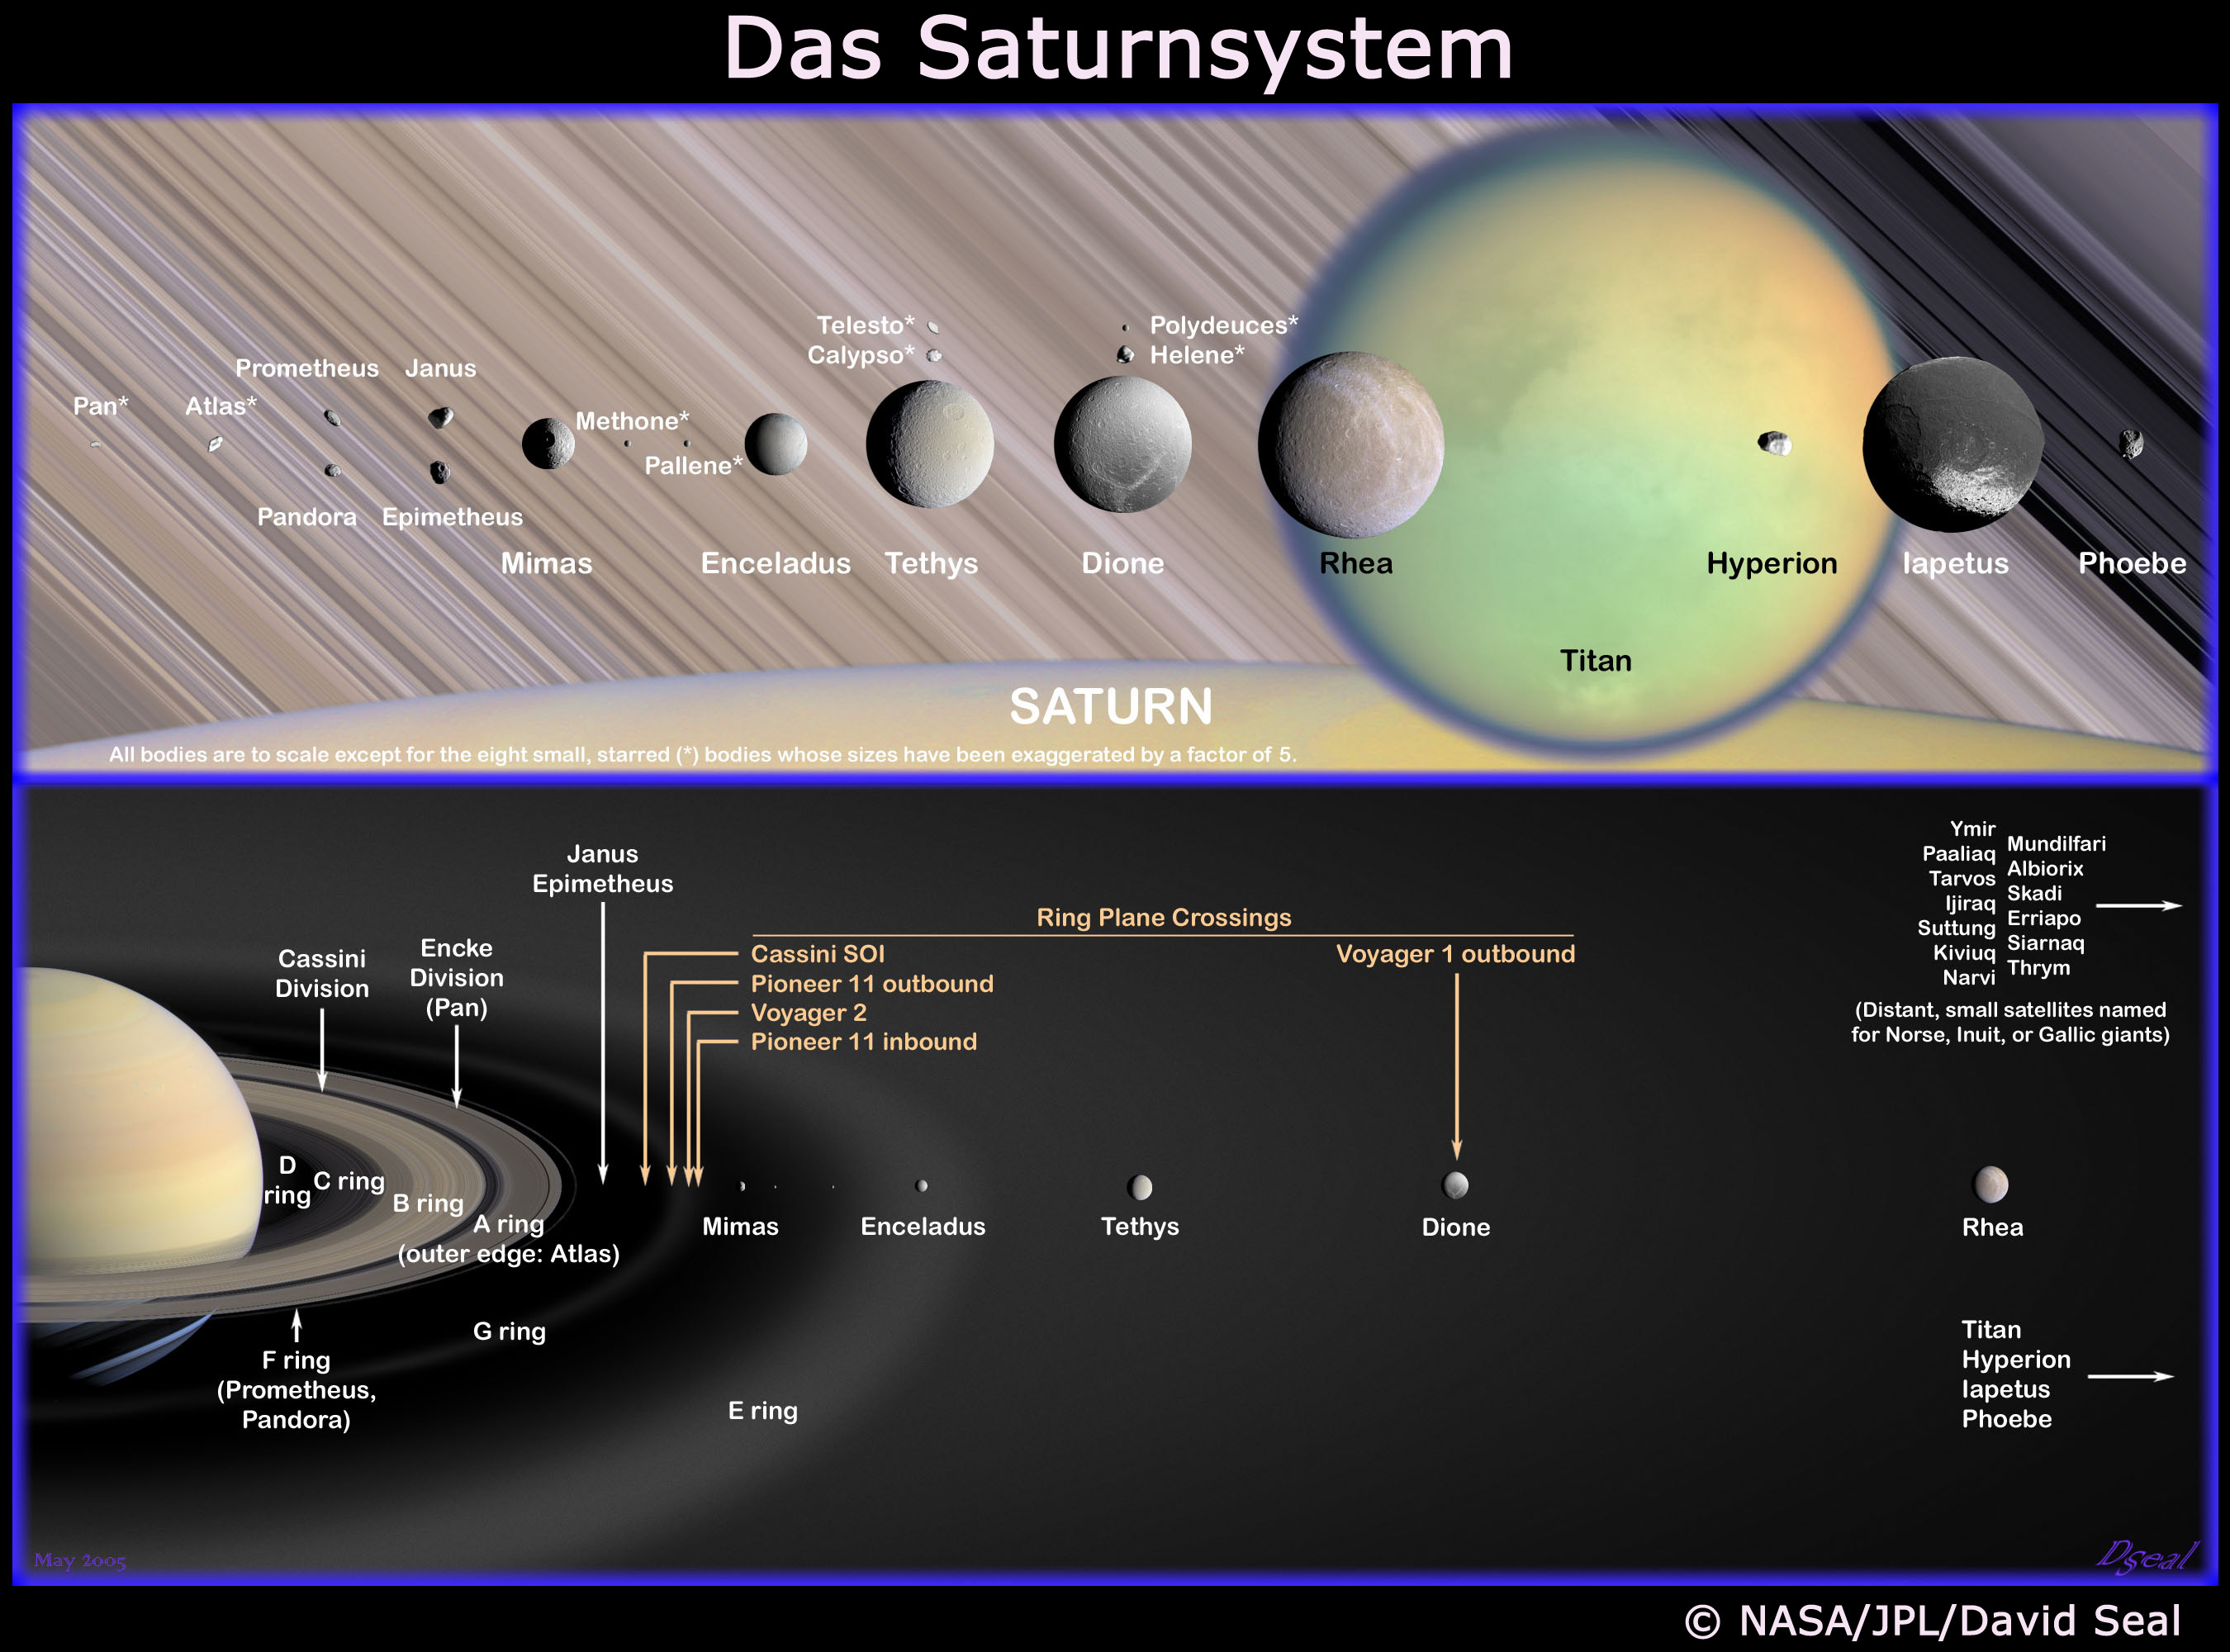 DLR - Cassini-Huygens - Saturn's moons and rings